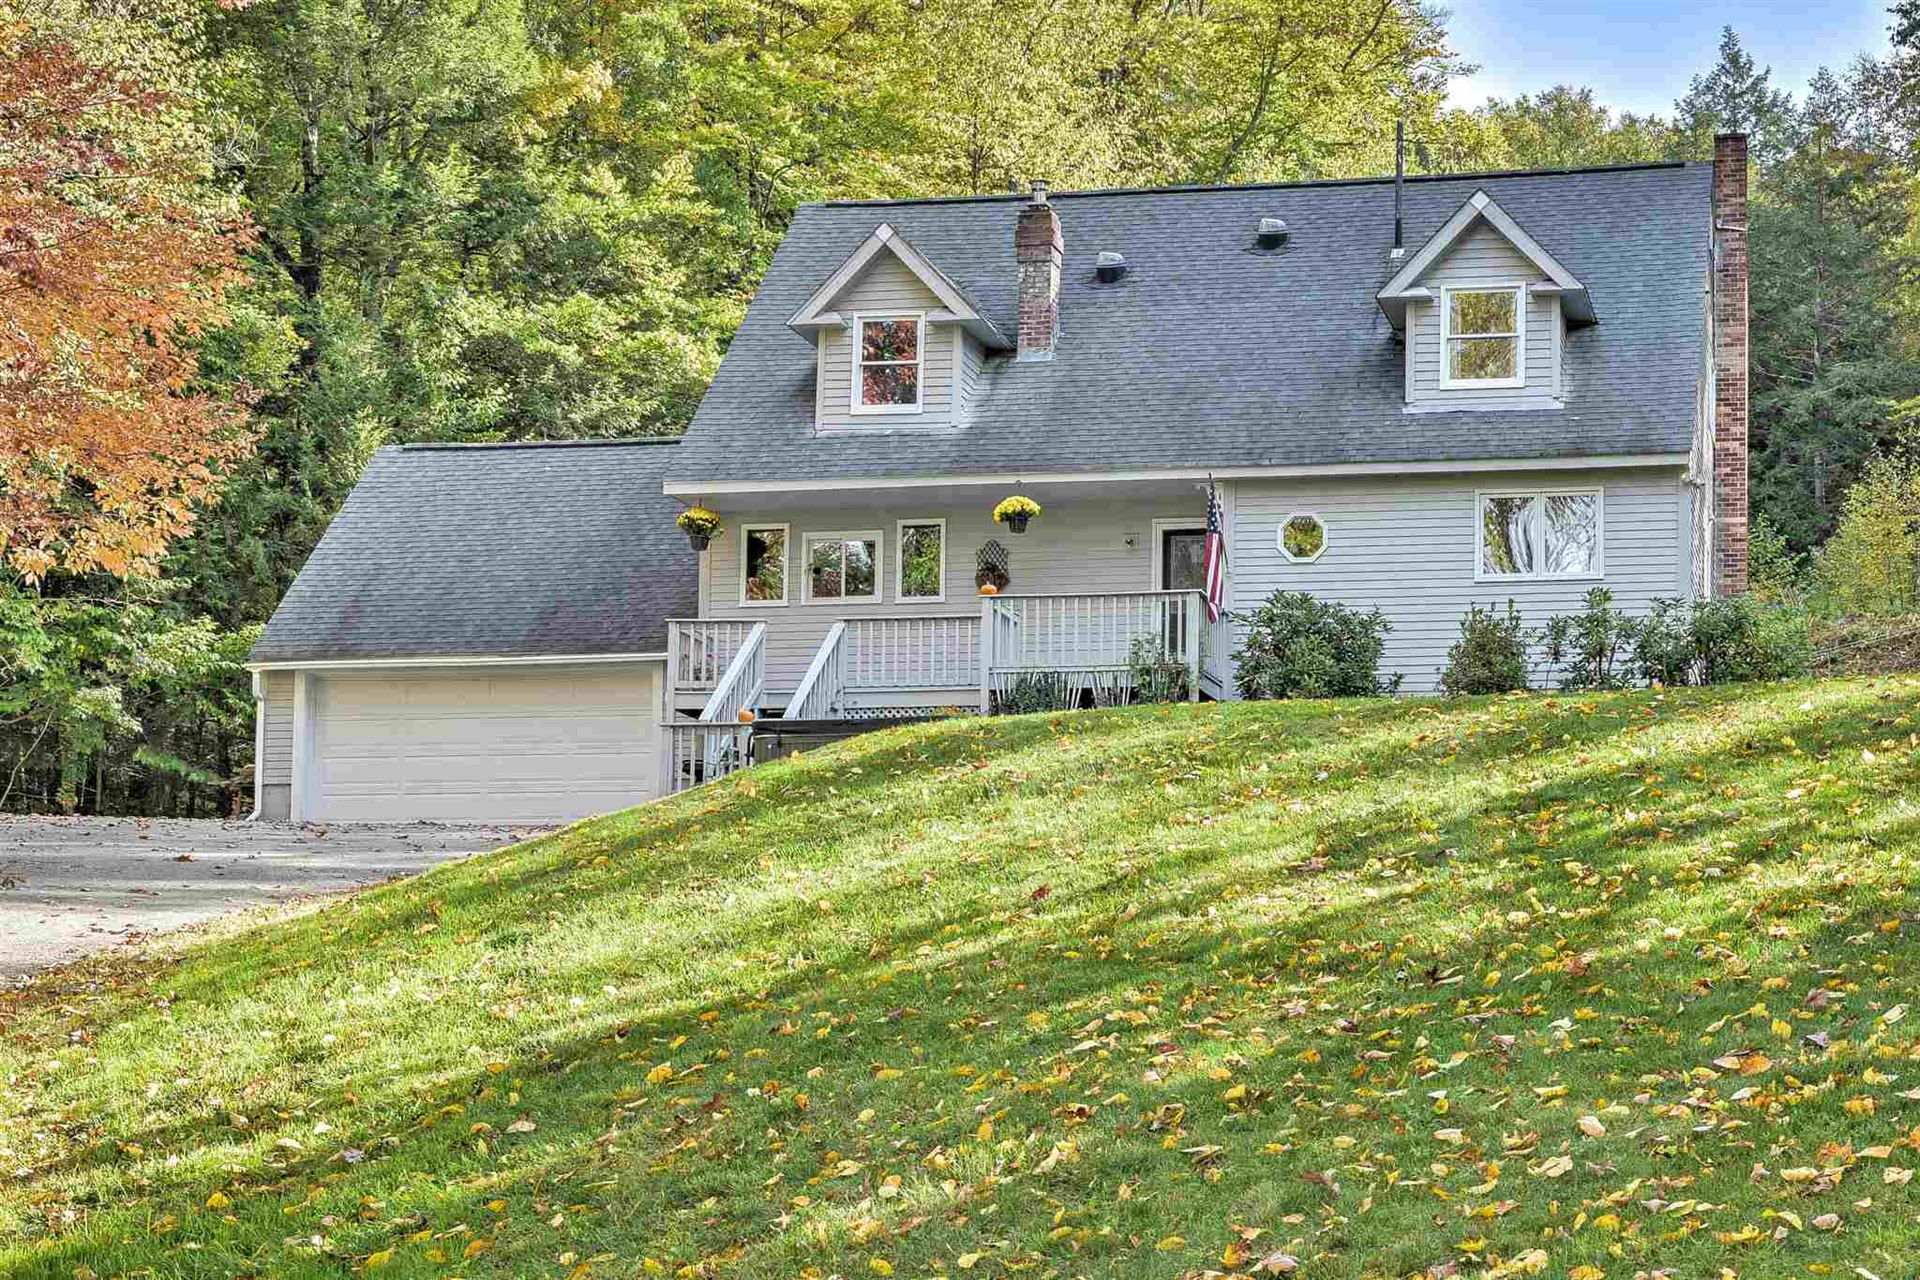 158 Hutchins Road, Chesterfield, NH 03466 - MLS#: 4848691